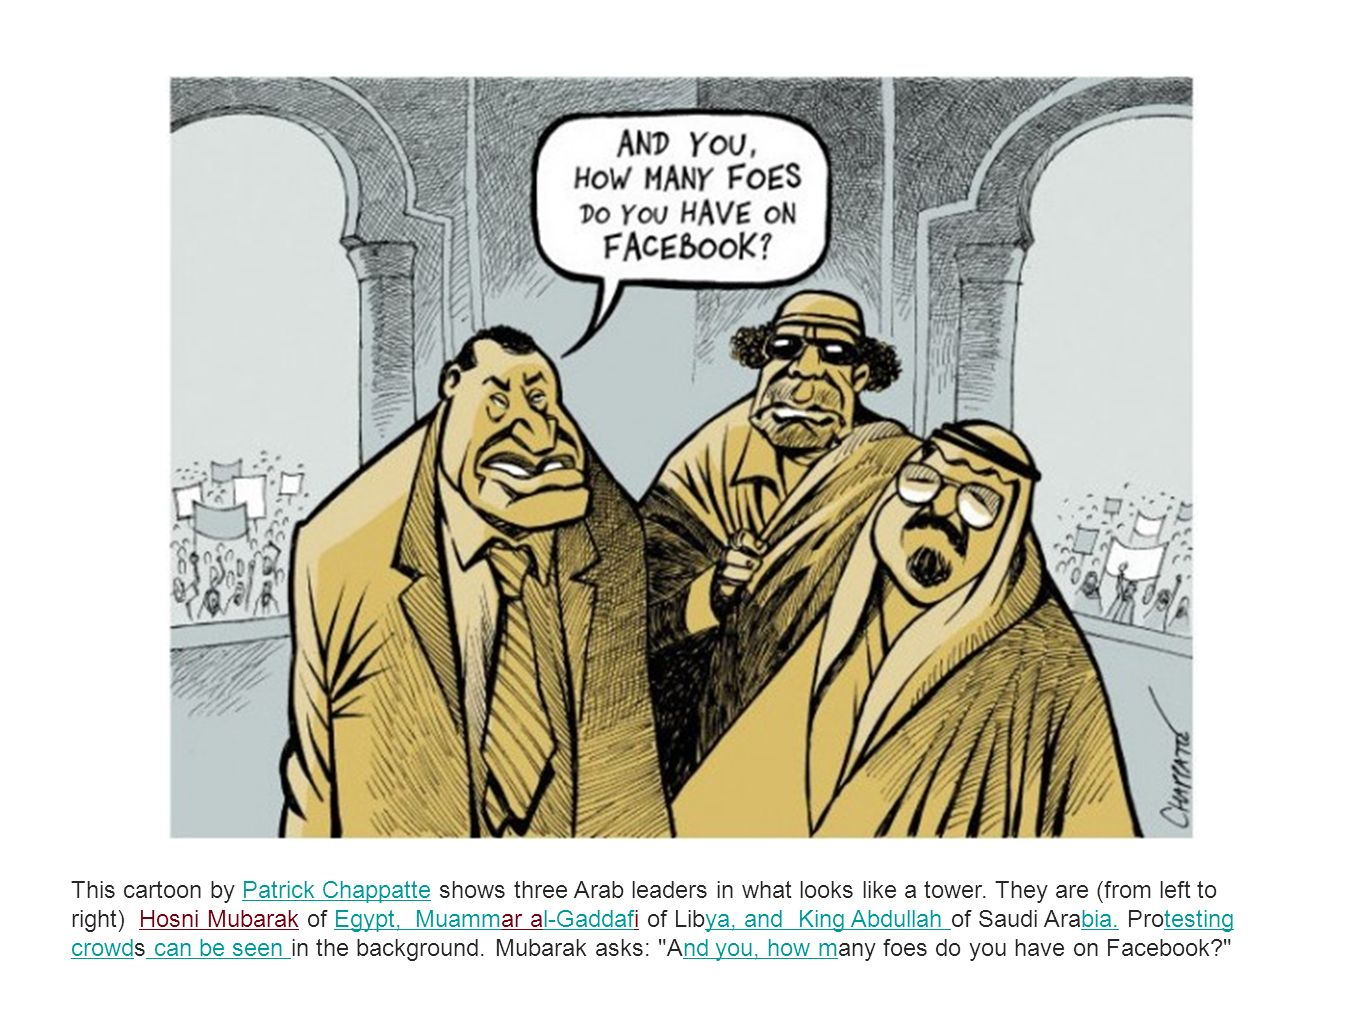 This cartoon by Patrick Chappatte shows three Arab leaders in what looks like a tower. They are (from left to right) Hosni Mubarak of Egypt, Muammar al-Gaddafi of Libya, and King Abdullah of Saudi Arabia. Protesting crowds can be seen in the background. Mubarak asks: And you, how many foes do you have on Facebook